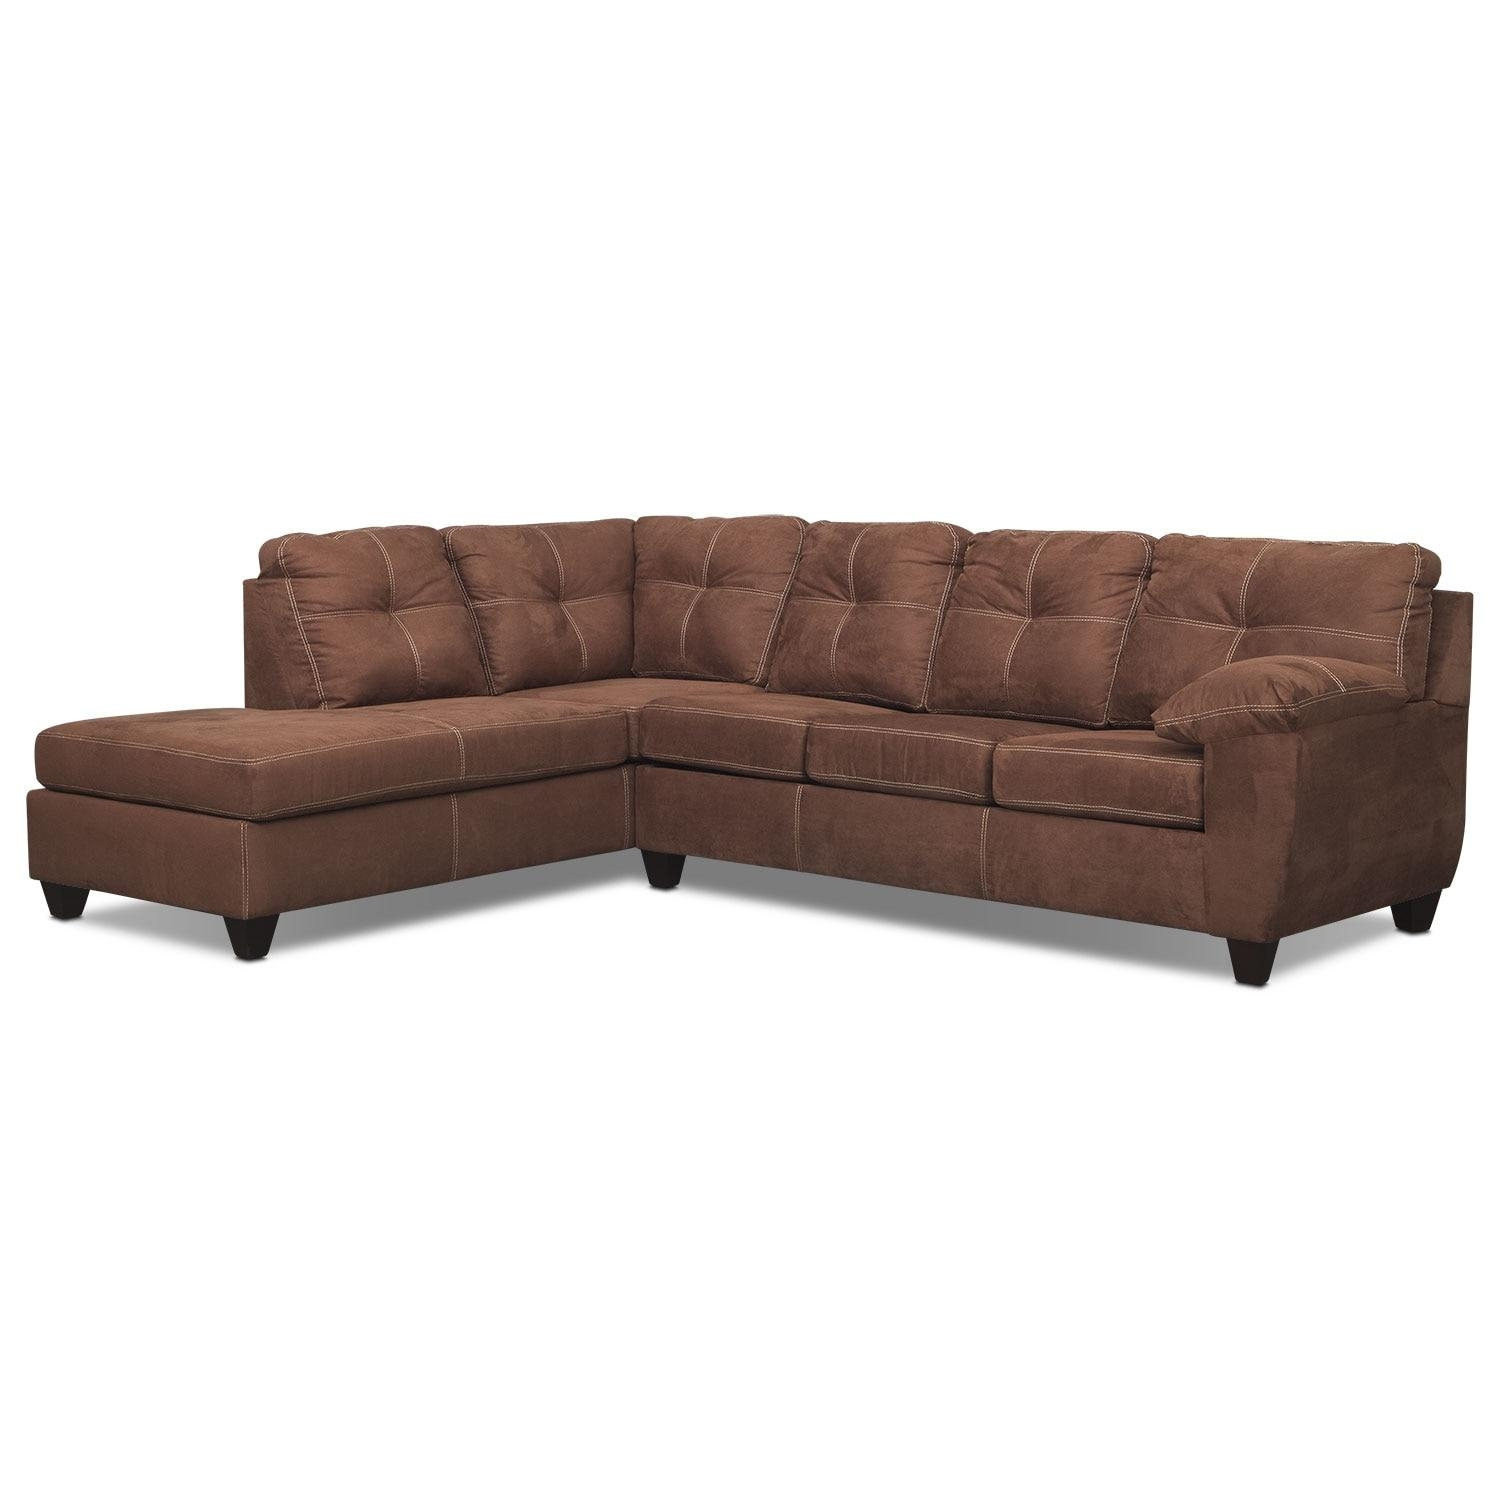 Sleeper Sofas | Value City Furniture | Value City Furniture Inside Sectional With Recliner And Sleeper (Image 19 of 20)